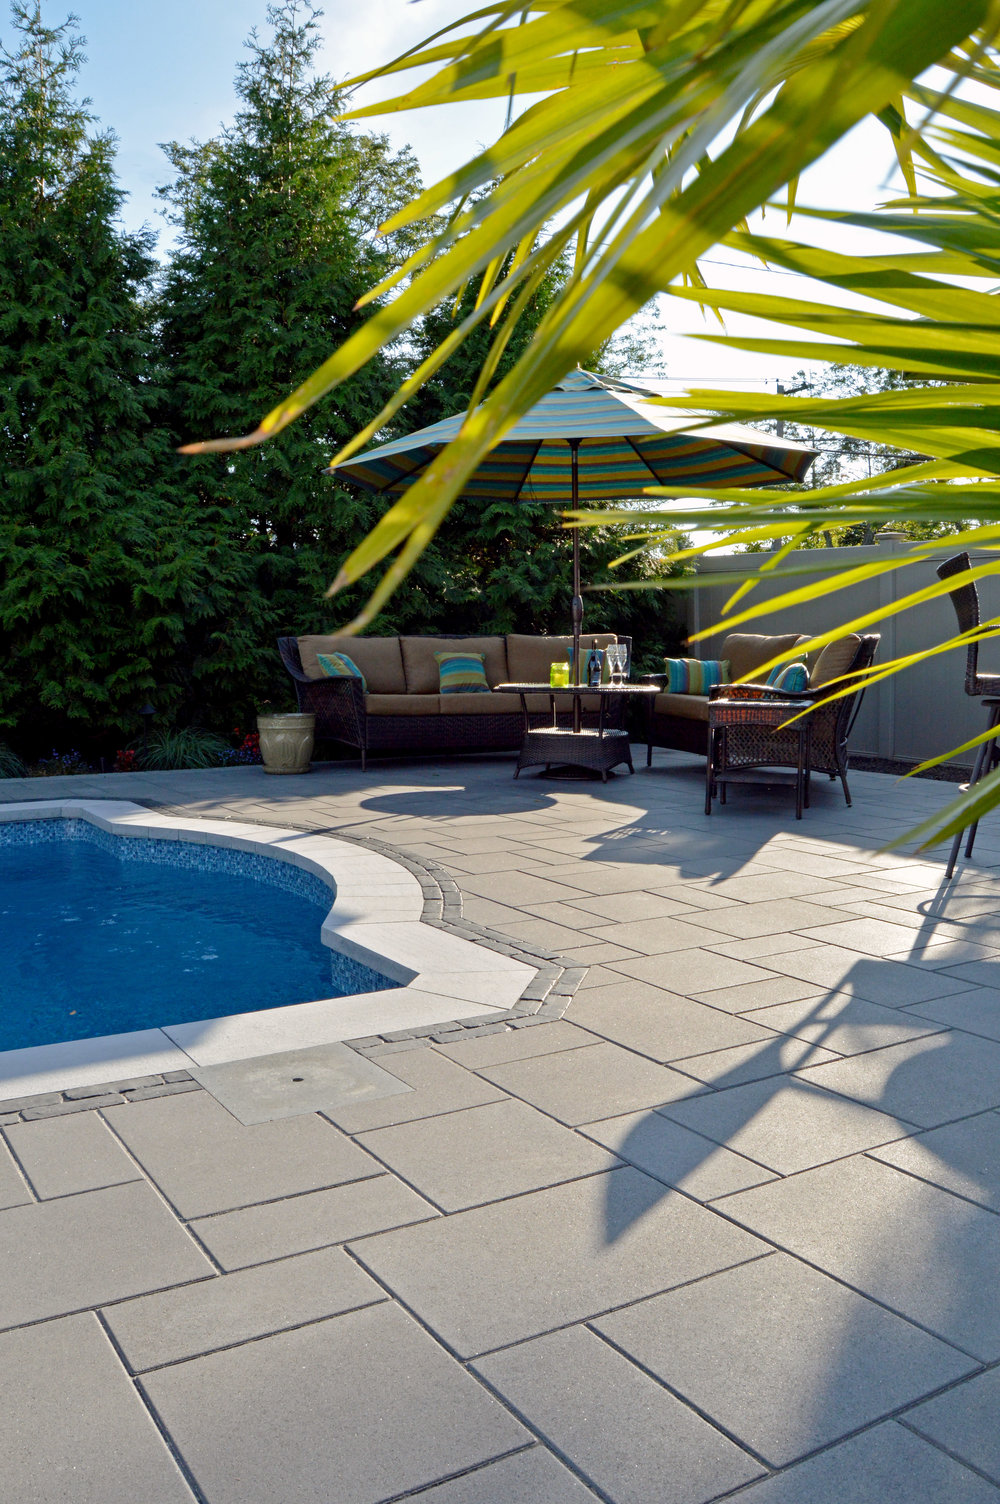 hicksville, NY swimming pool and patio